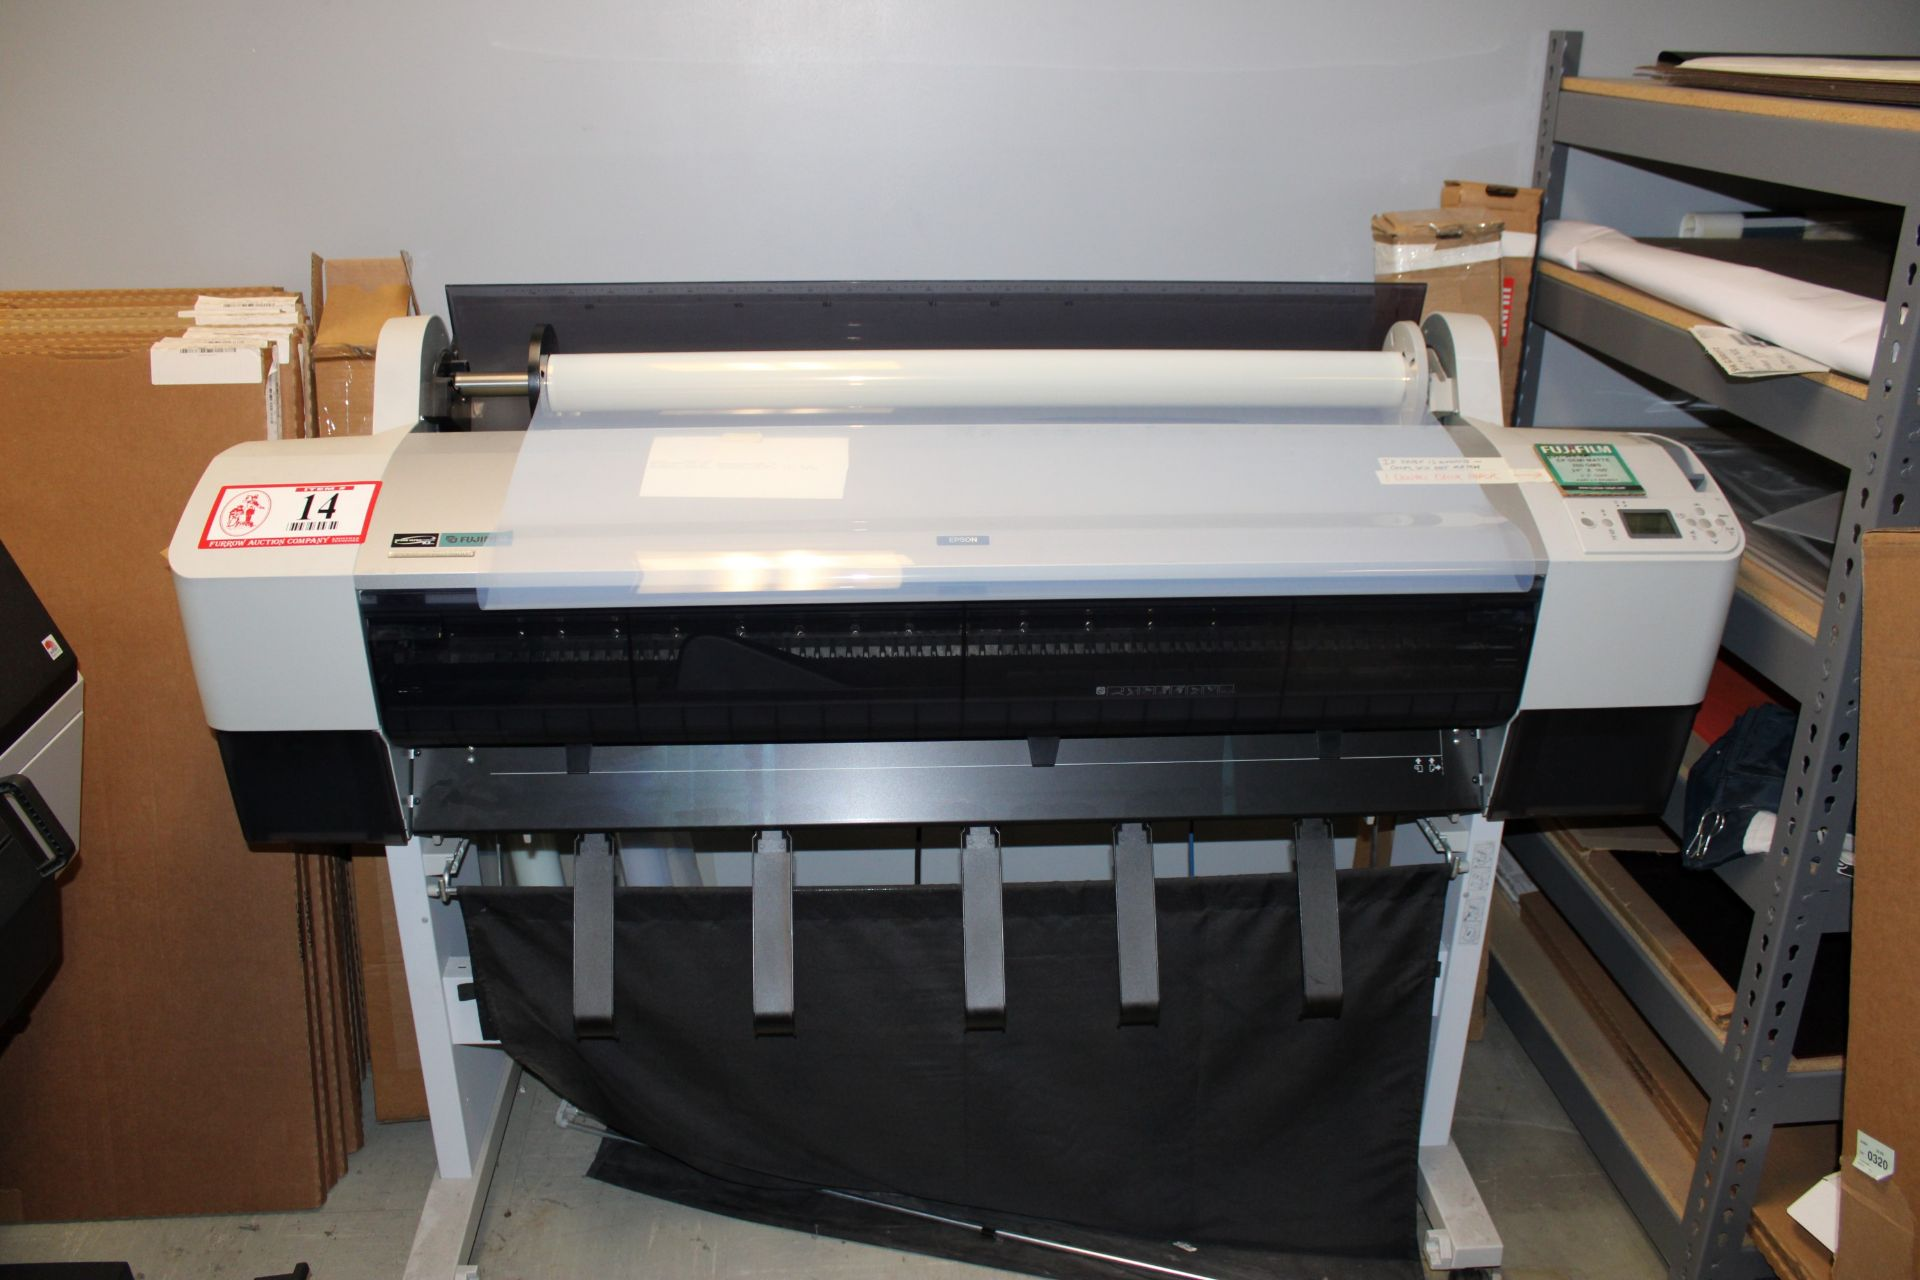 Lot 14 - EPSON Stylus Pro 9800 Wide Format Printer - All Black For Positives For Silk Screen